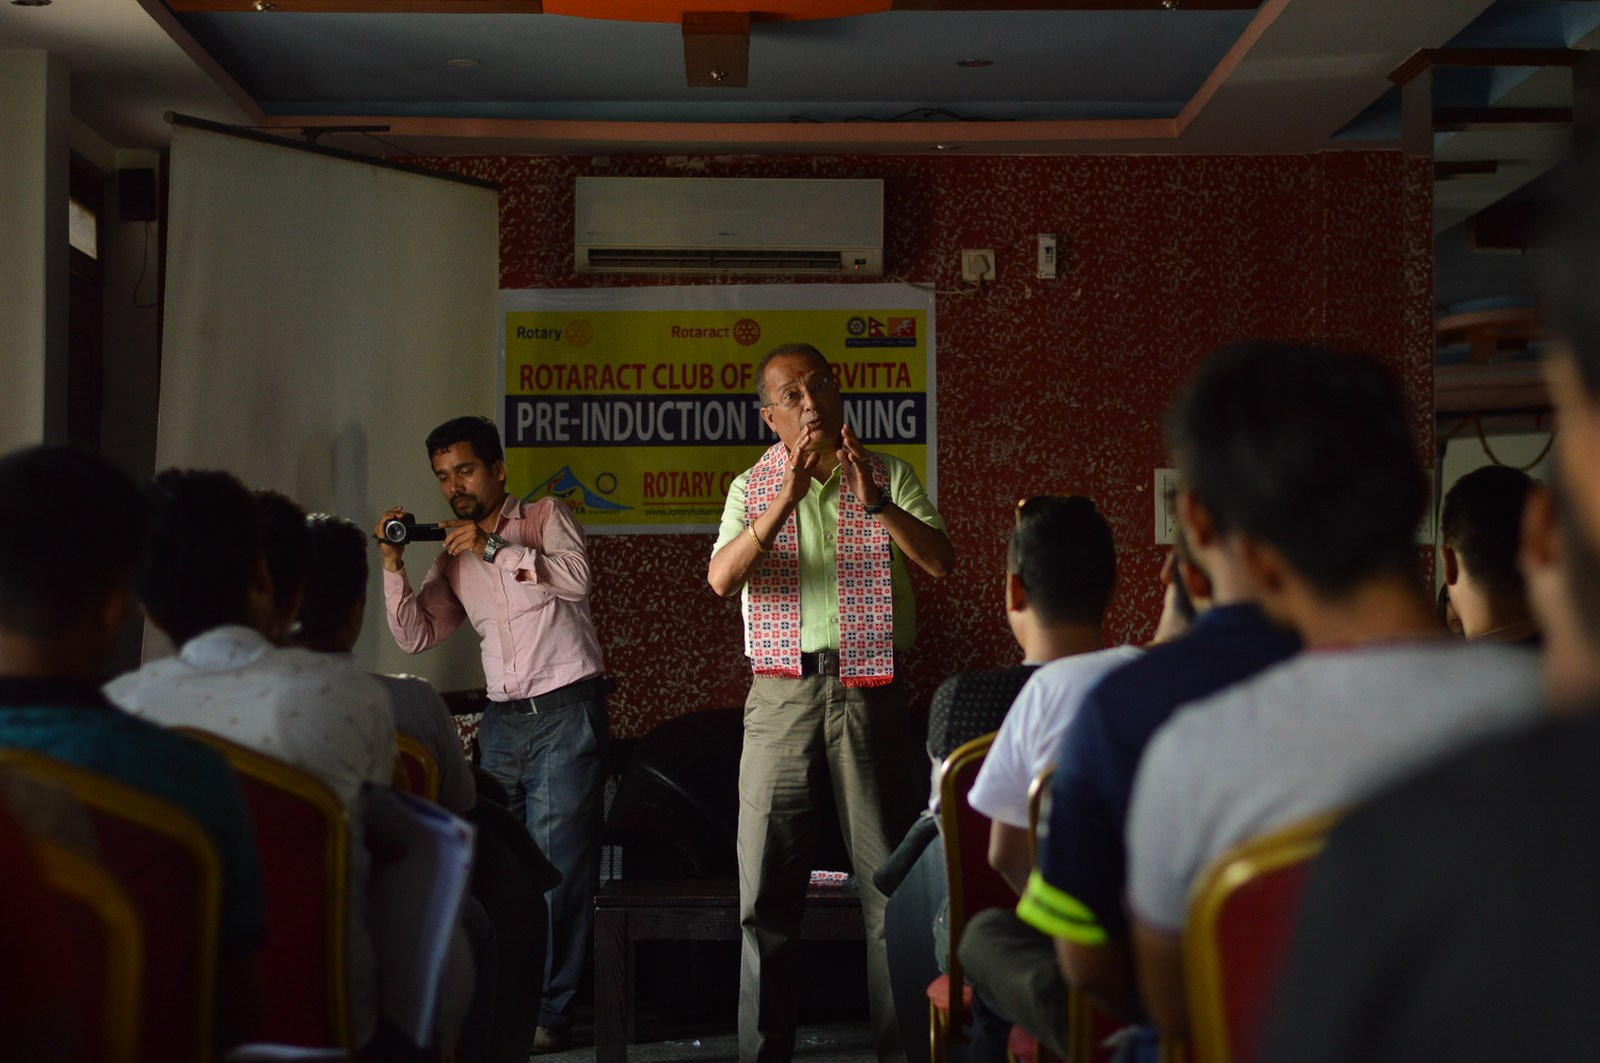 Pre-Induction-Training-of-Rotaract-Club-of-Kakarvitta-Rotary-Club-of-Kakarvitta-9